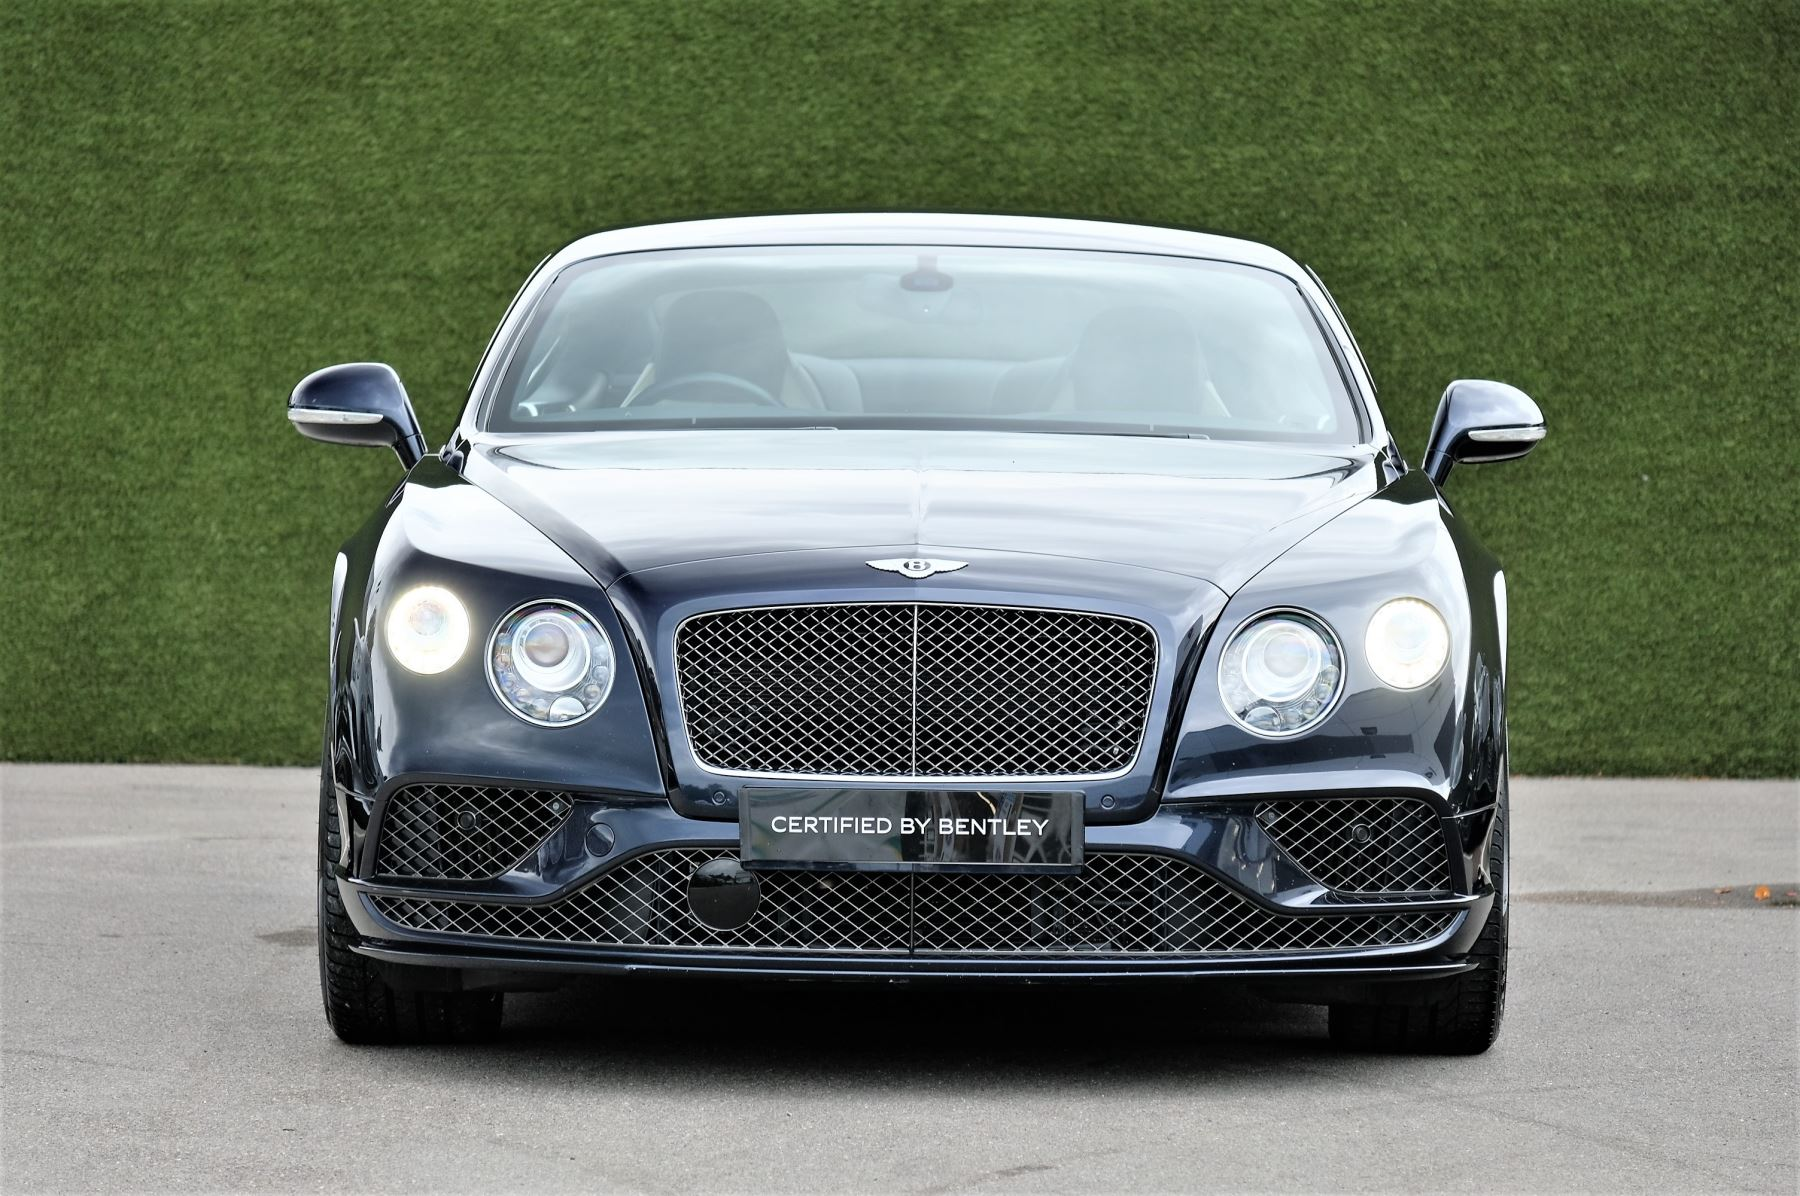 Bentley Continental GT 6.0 W12 [635] Speed - 21 inch Directional Sports Alloys - Ventilated Front Seats with Massage image 2